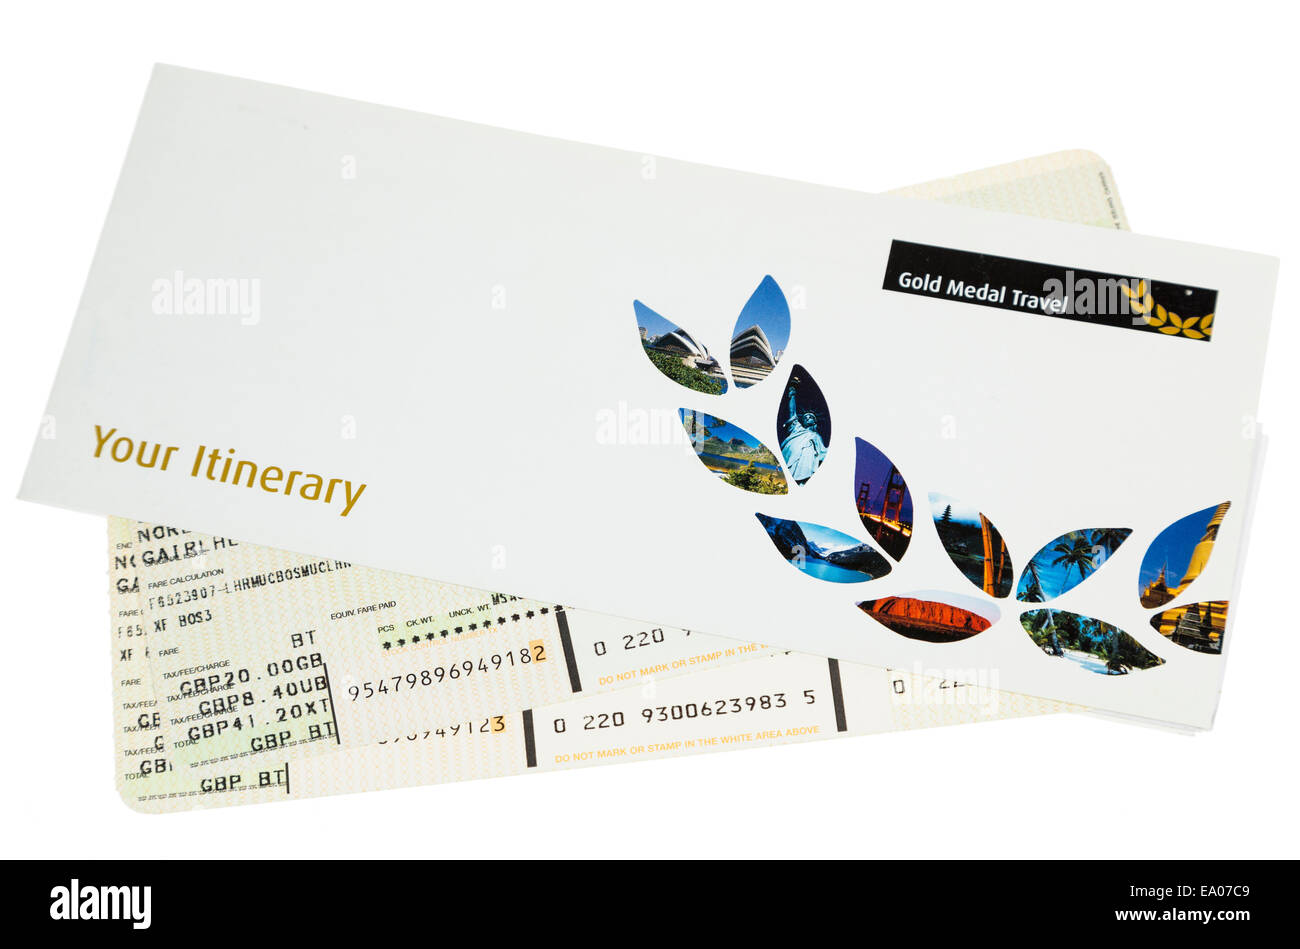 Airline ticket and itinerary for flying from Gatwick, London, UK - Stock Image